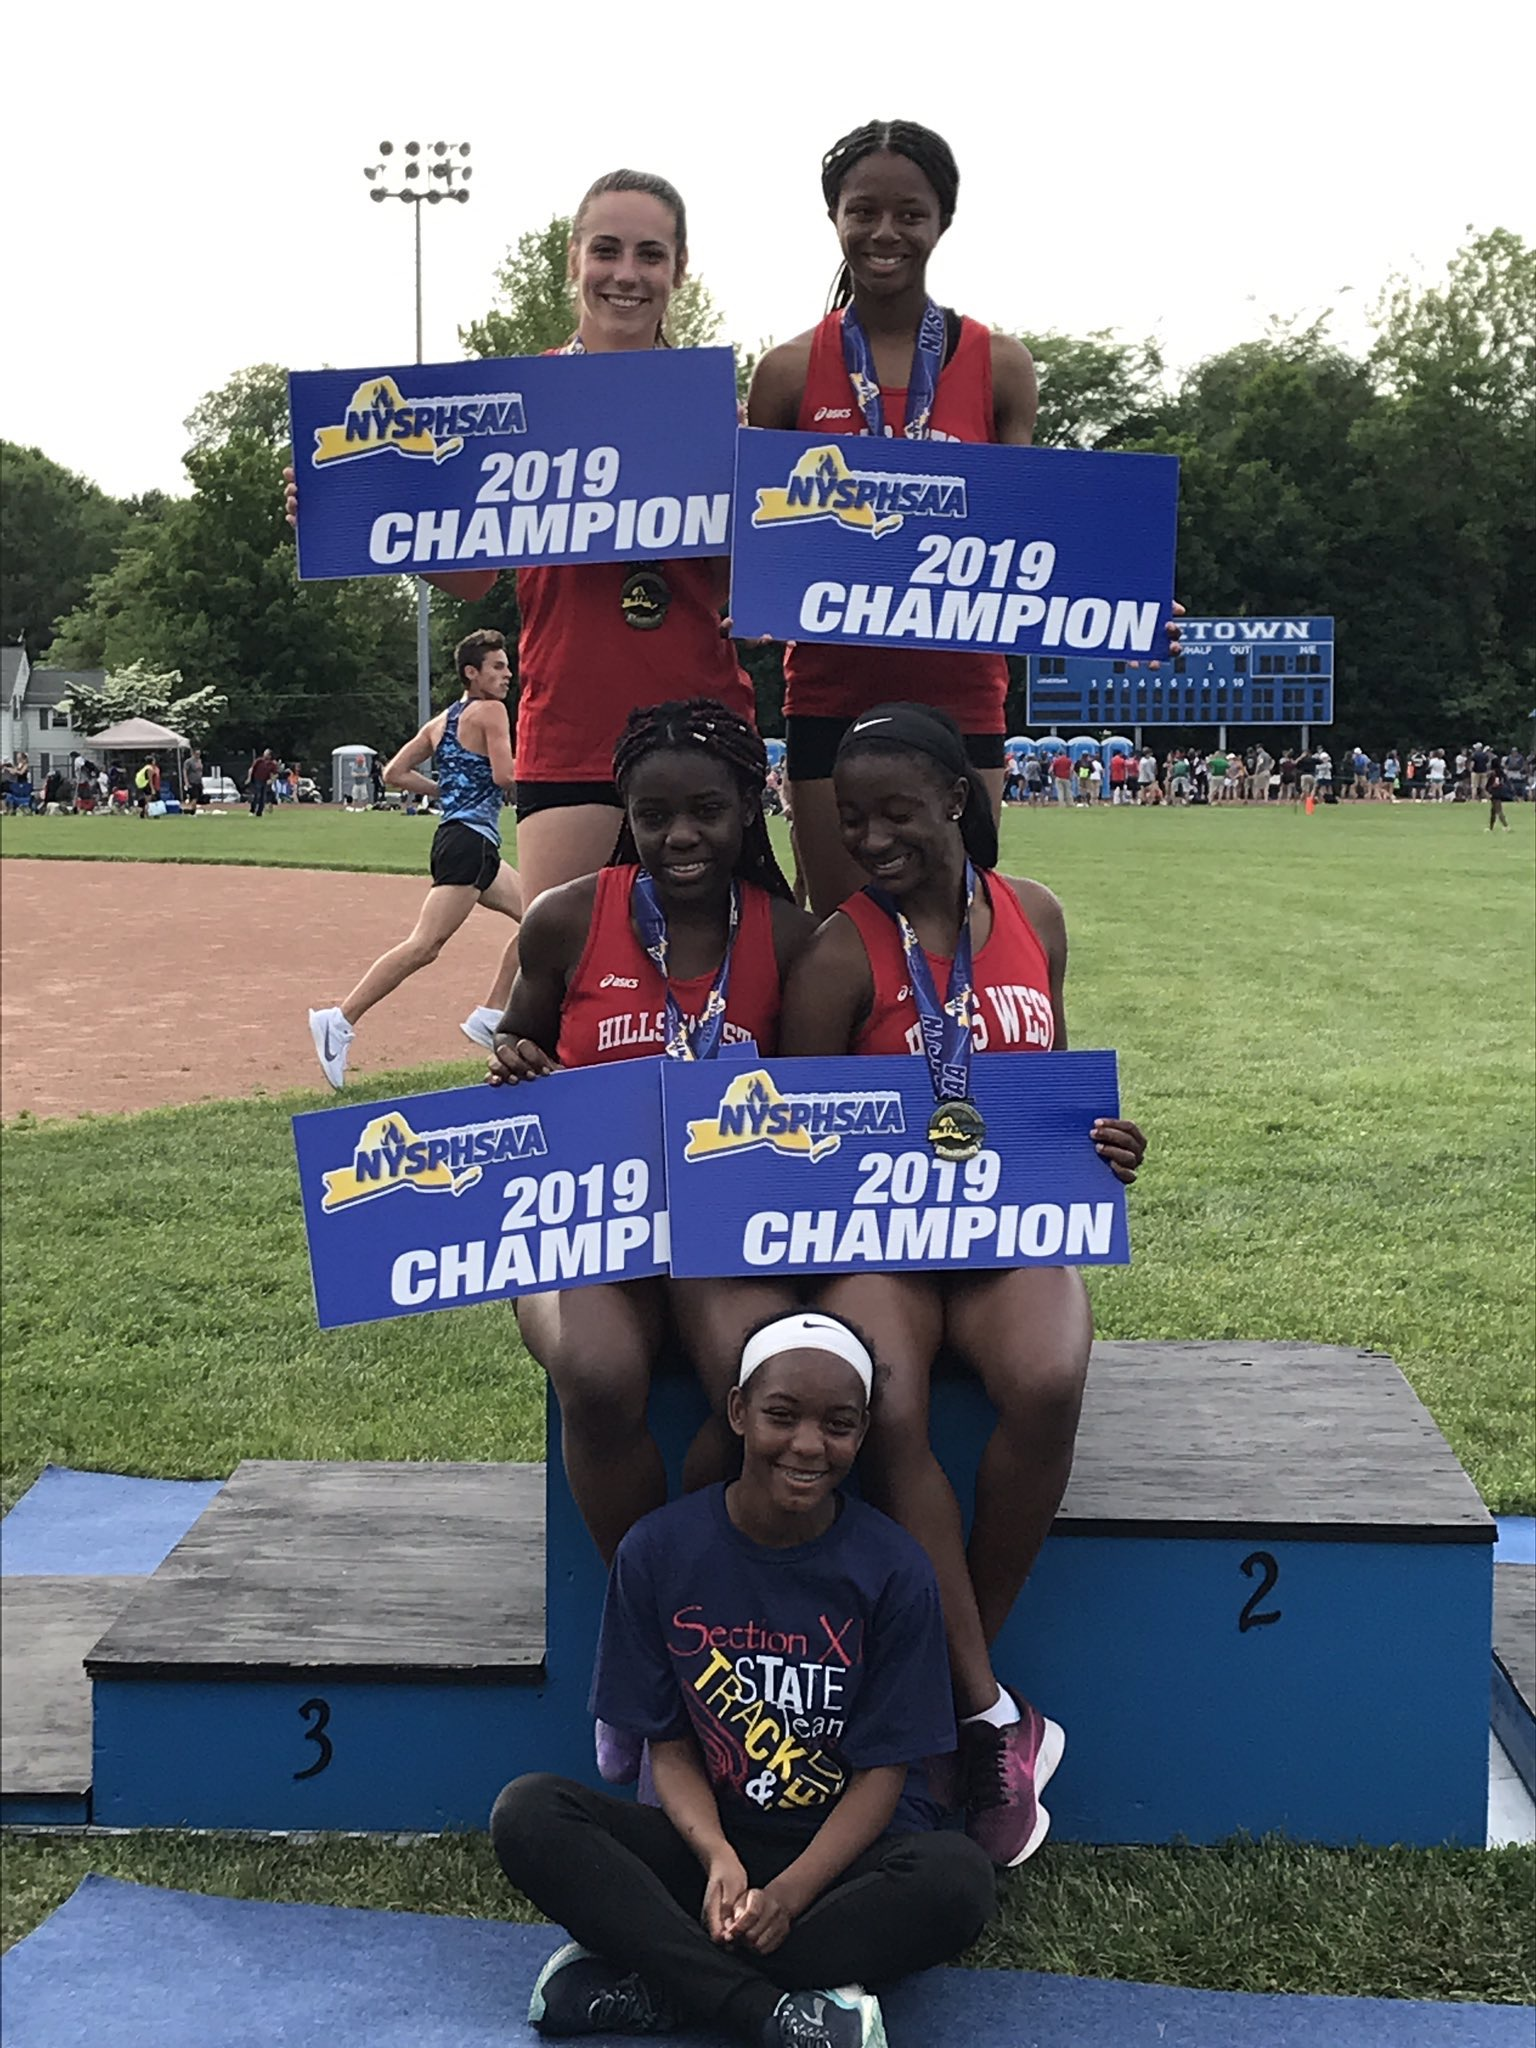 Hills West Girls 4x100 Relay Team Wins New York State Championship